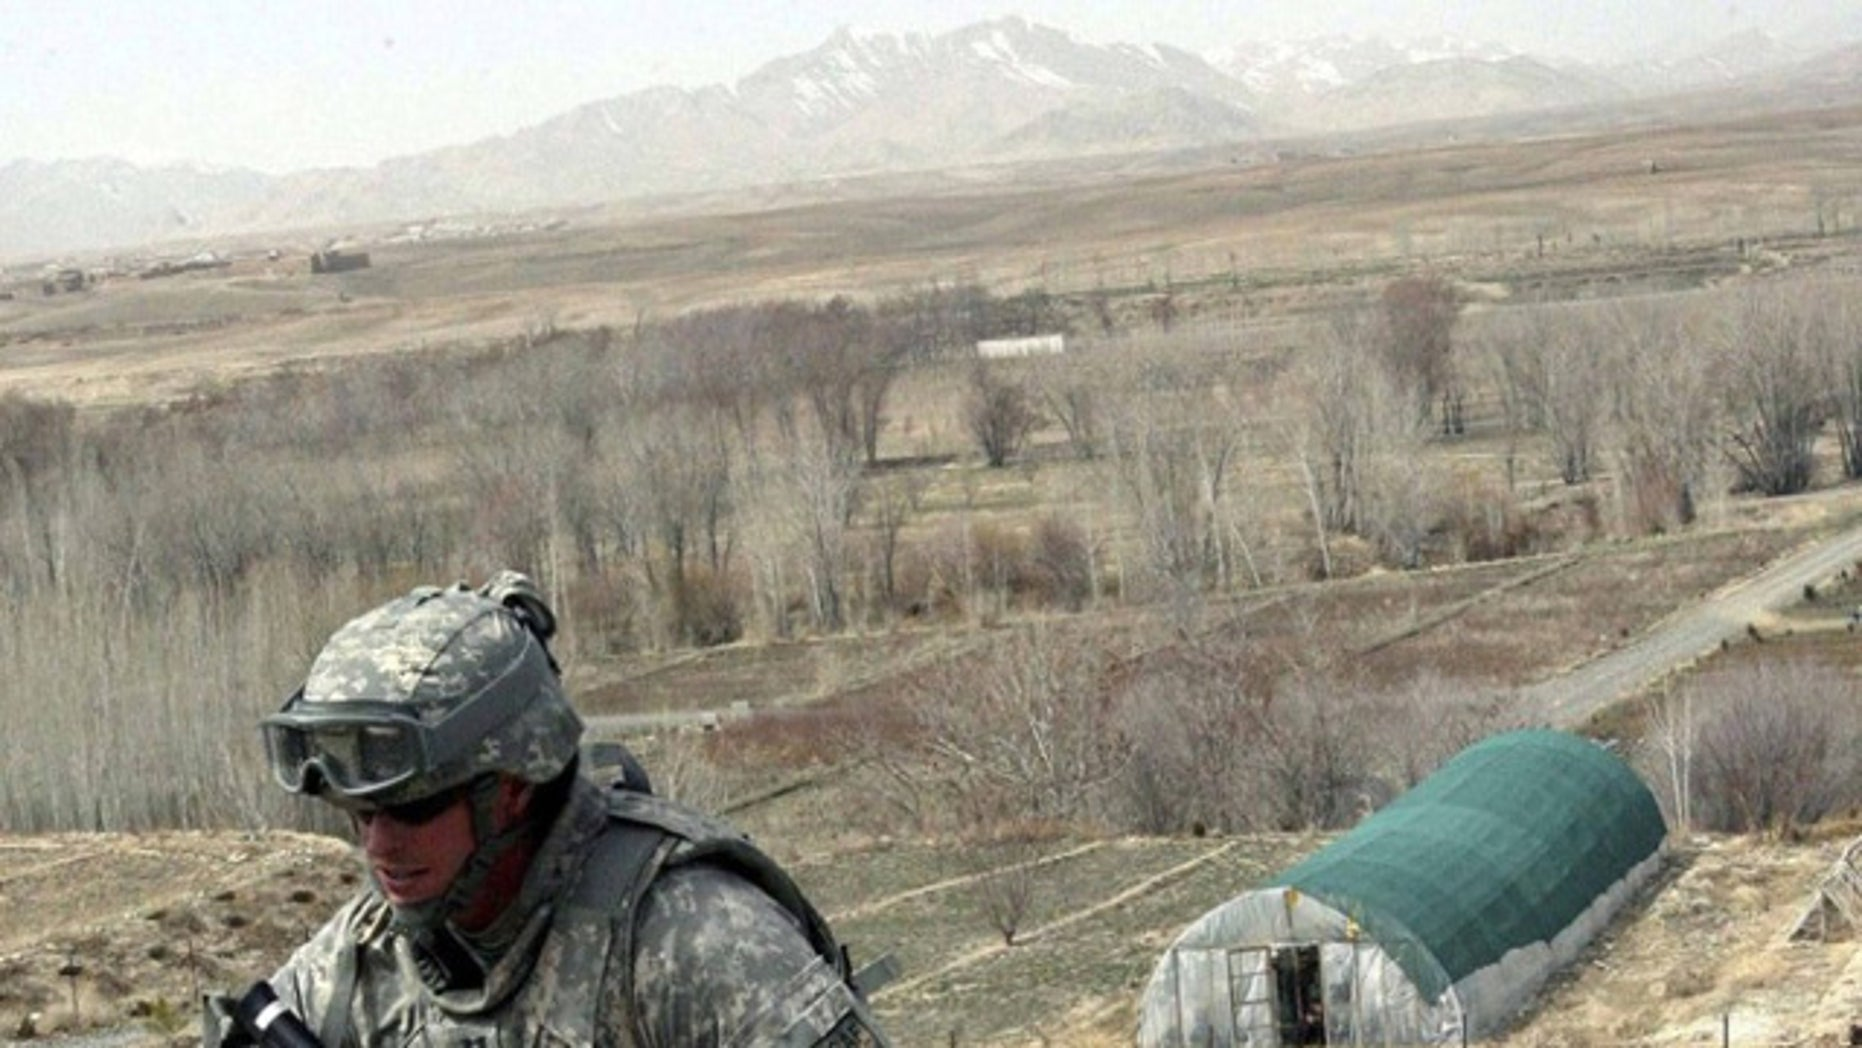 March 14: A U.S. soldier walks through Ghazni Province, a region U.S. officials believe may hold a vast deposit of minerals.